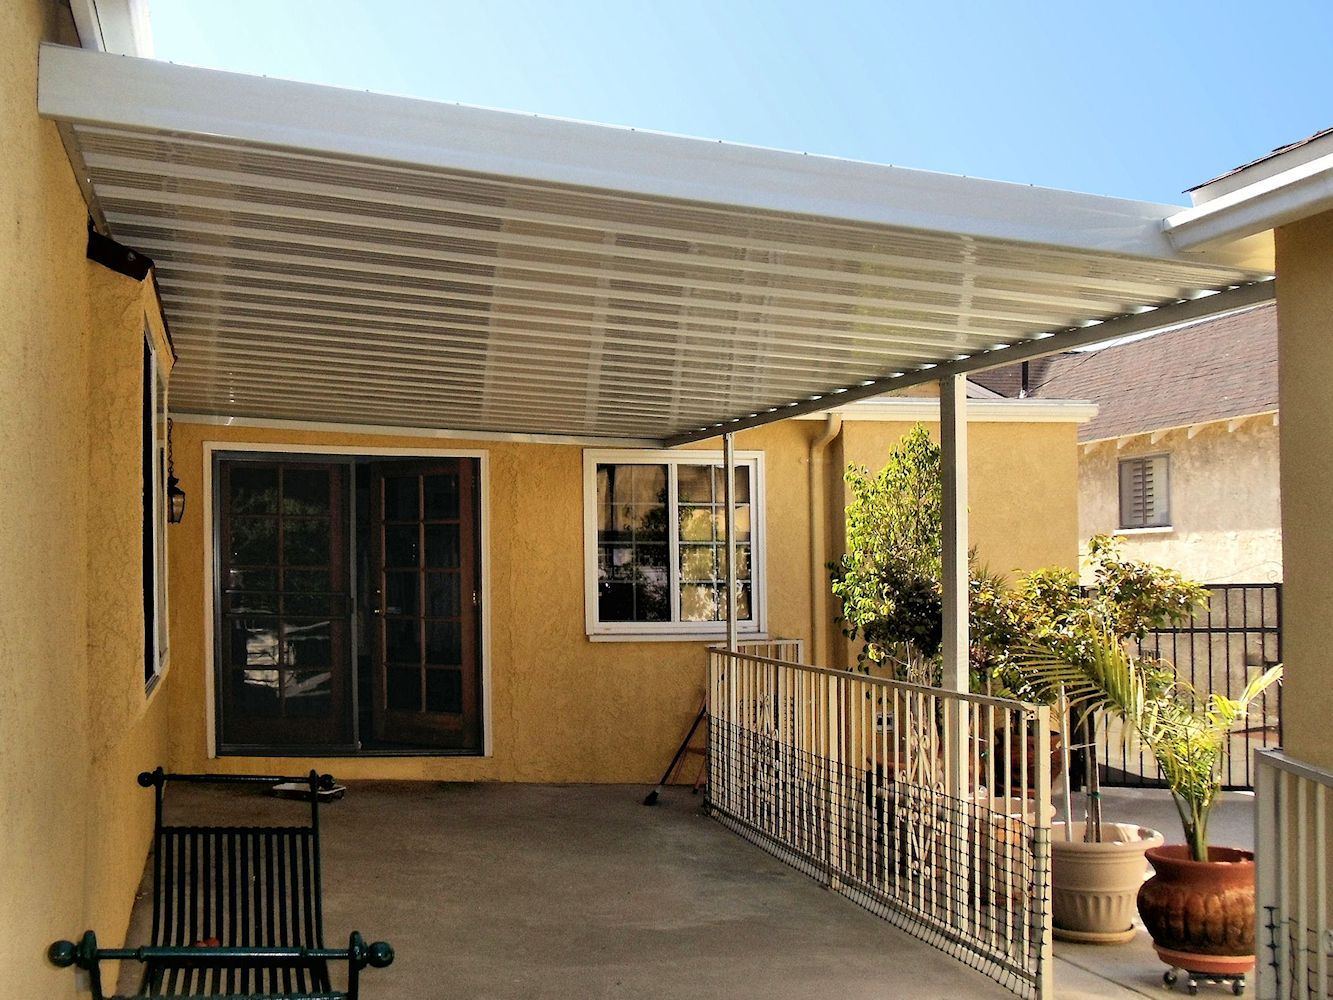 Crest 700 Flat Pan Aluminum Awning over patio | Aluminum ...